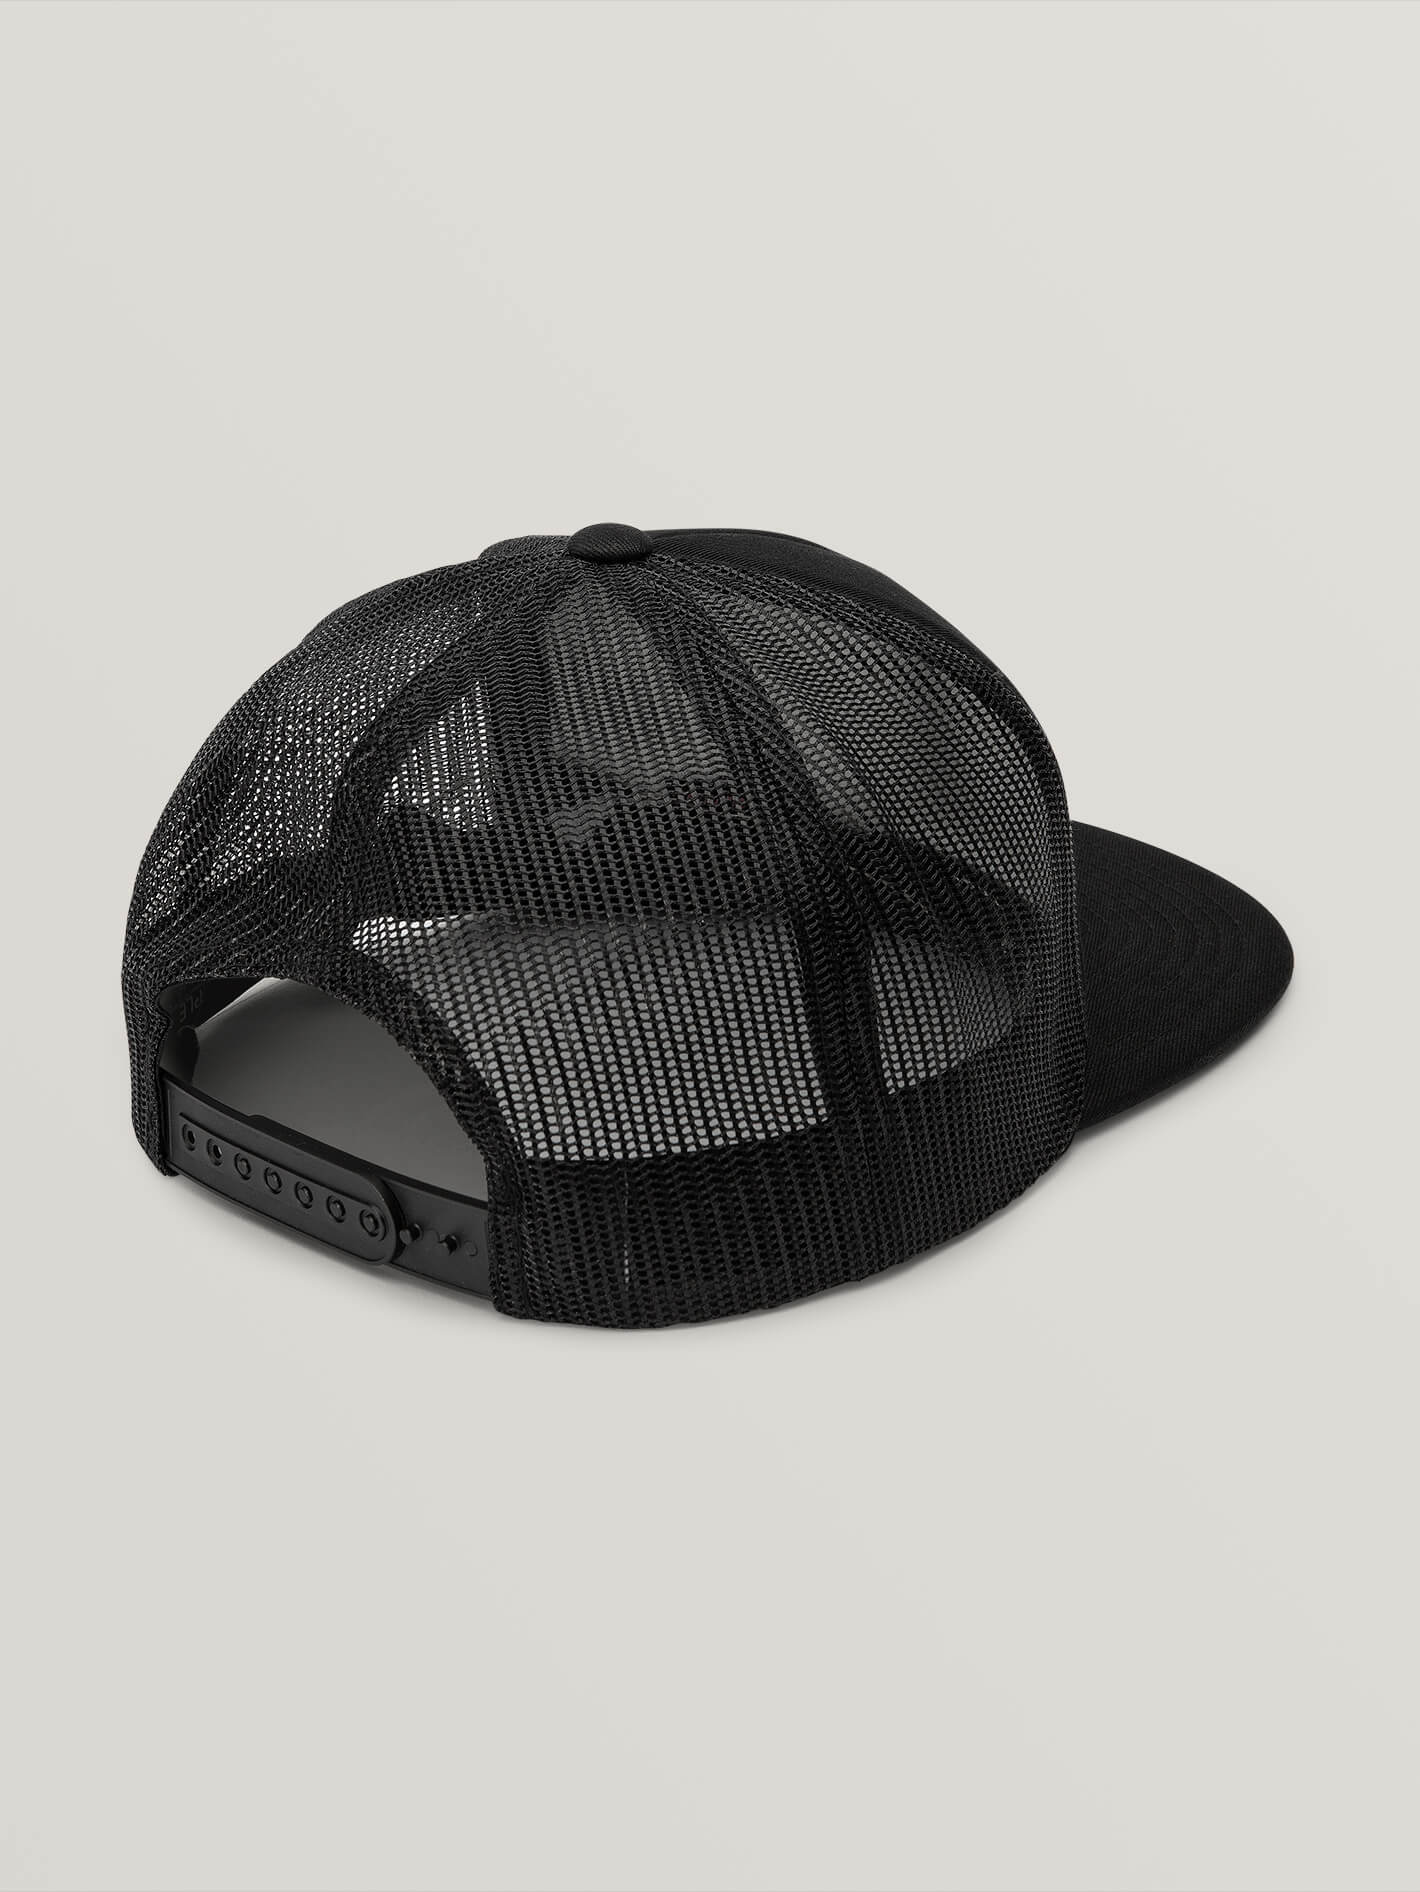 b3befb8e8fa2b Quick View · Stoke Made Hat - Black